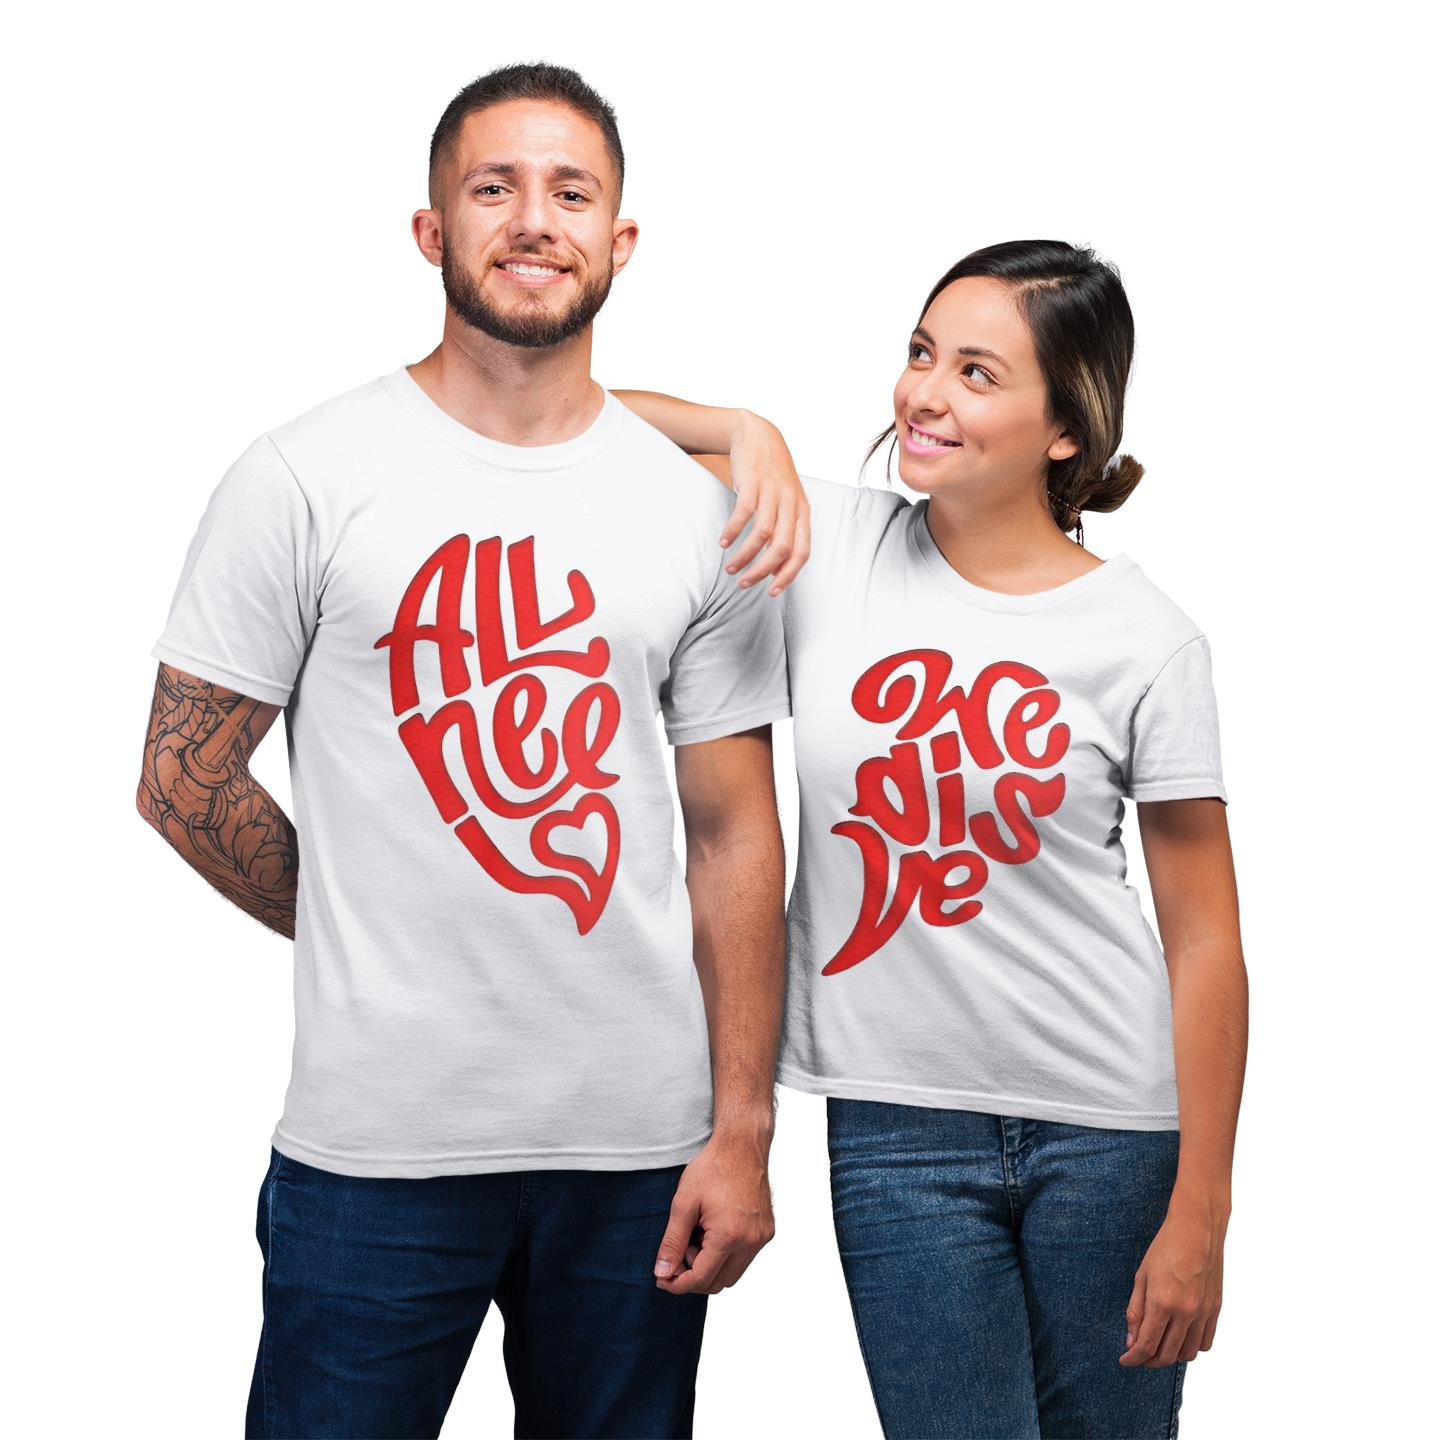 All We Need Is Love Shirt For Lover Couple T-shirt